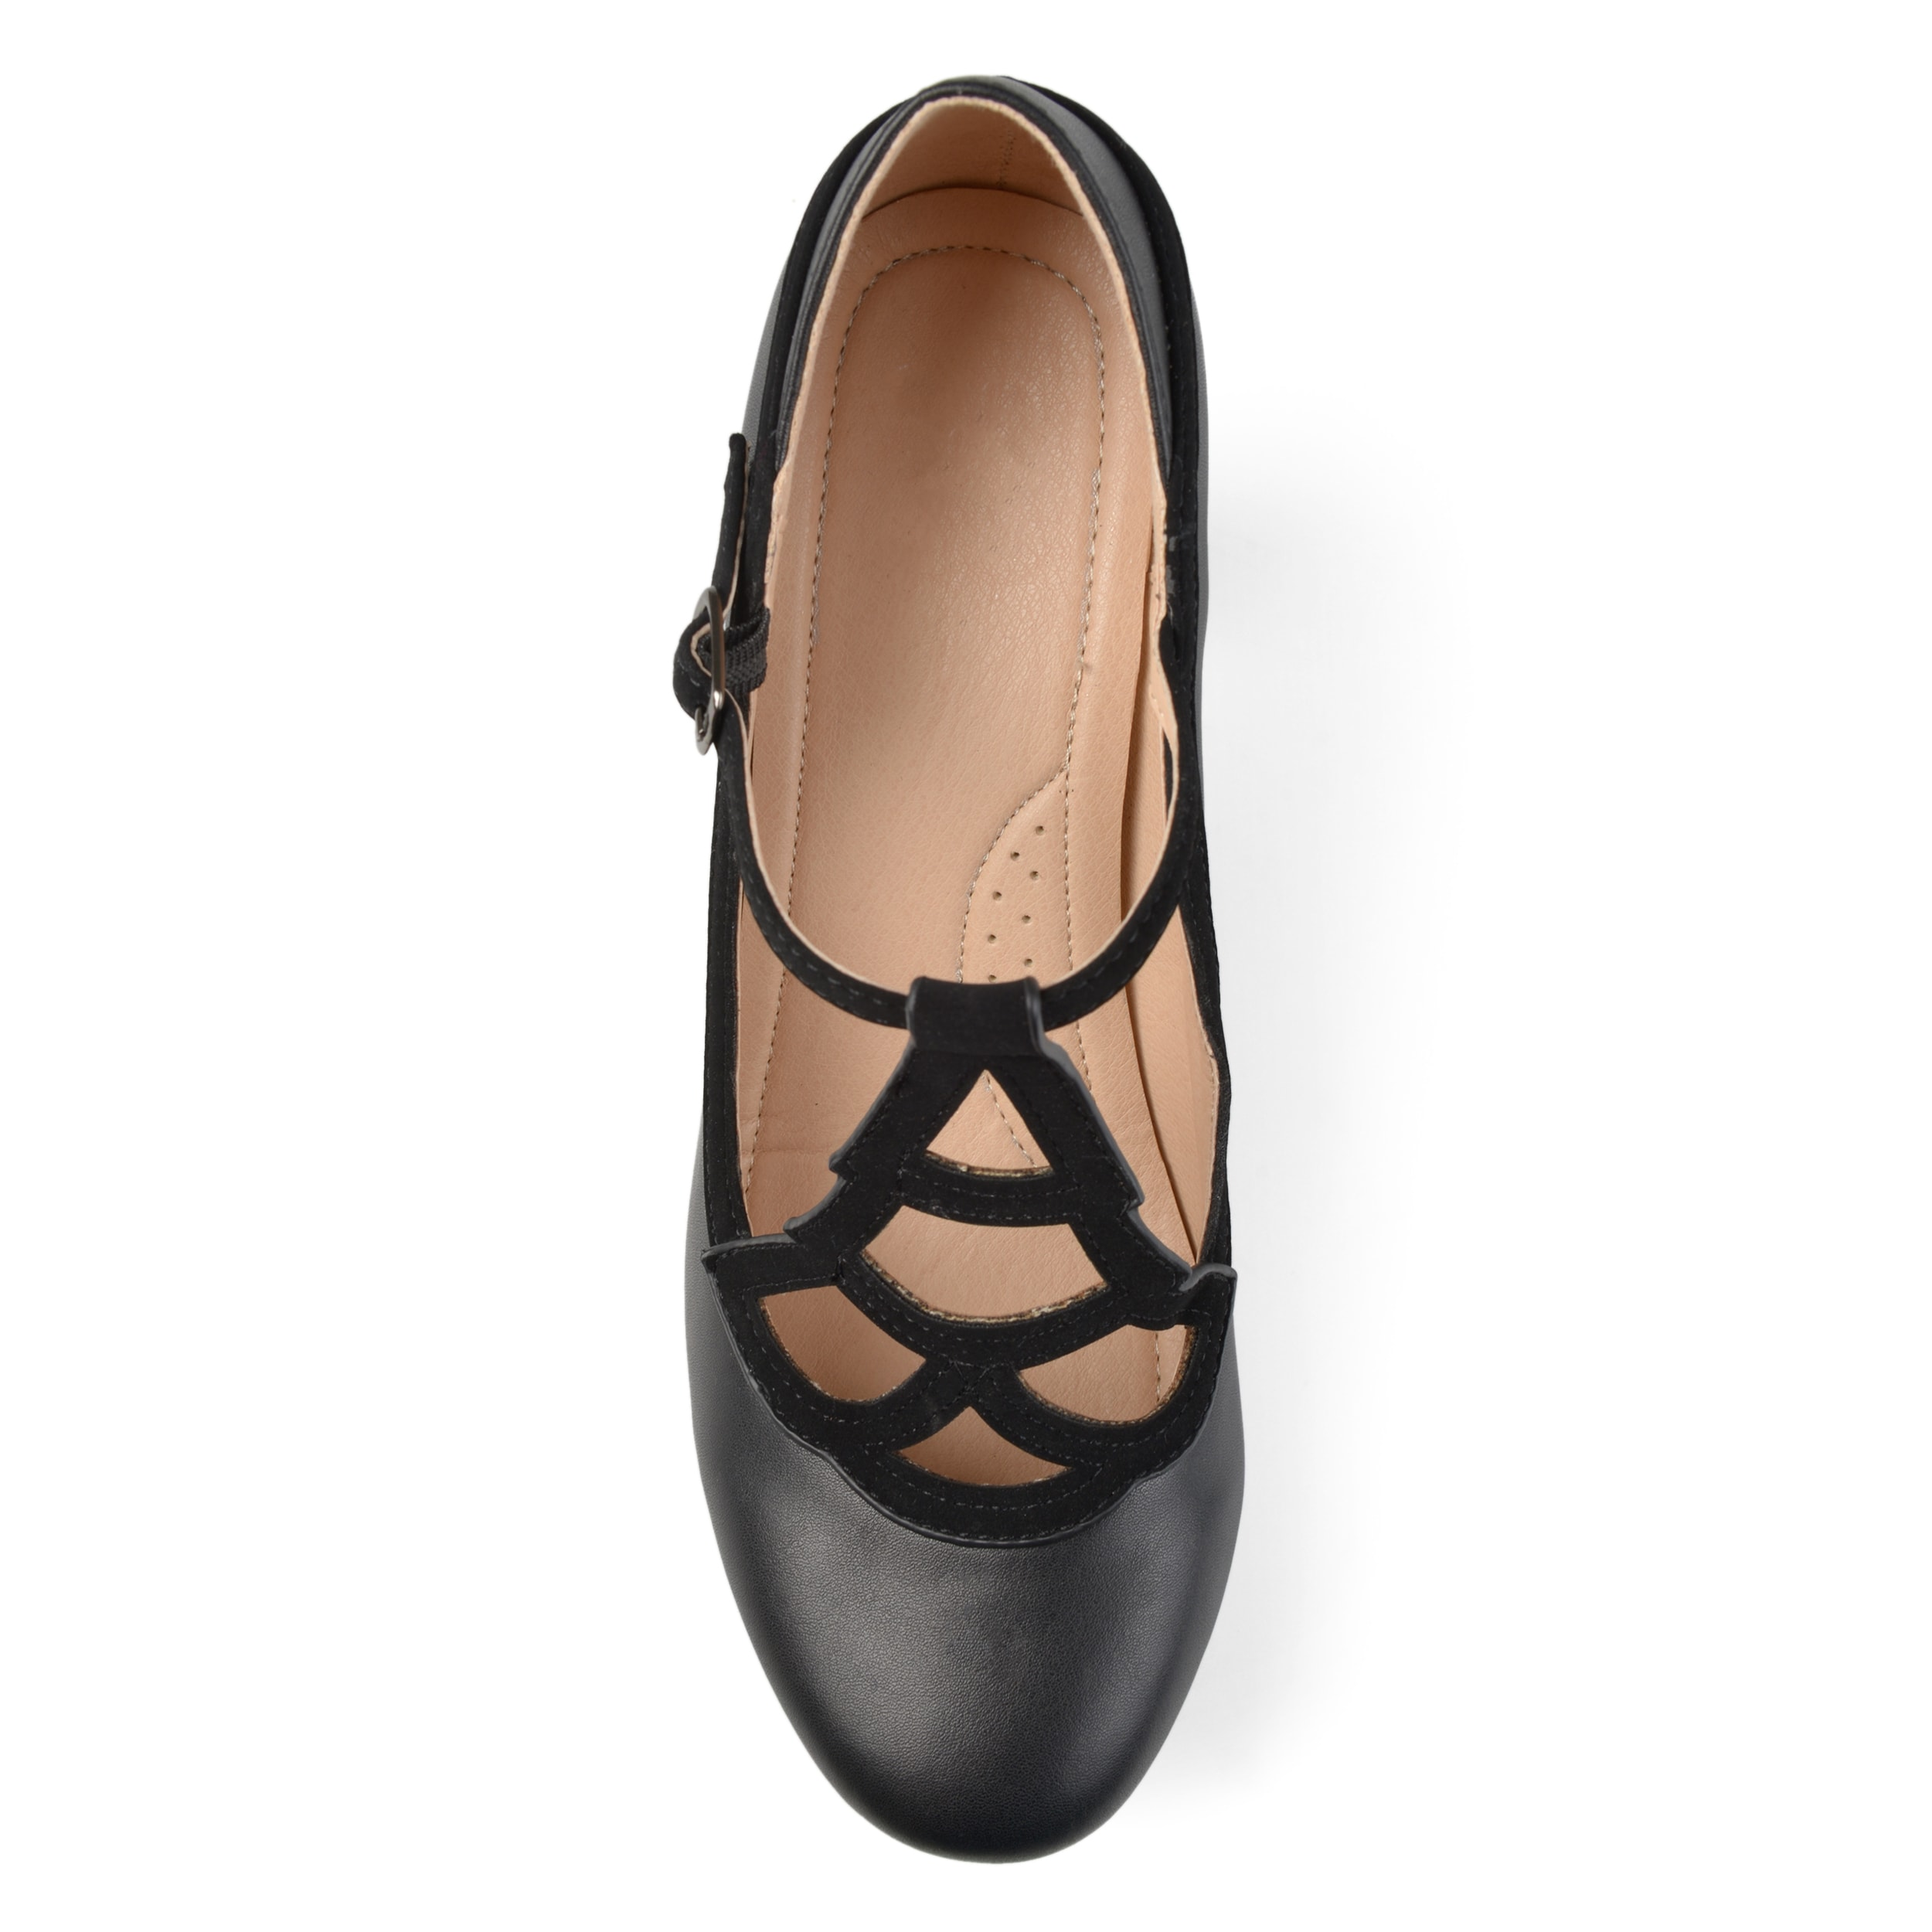 cde774bc3 Shop Journee Collection Women's 'Nile' Round-toe Vintage Comfort-sole Two- tone Lattice Mary Jane Pumps - Free Shipping On Orders Over $45 - Overstock  - ...